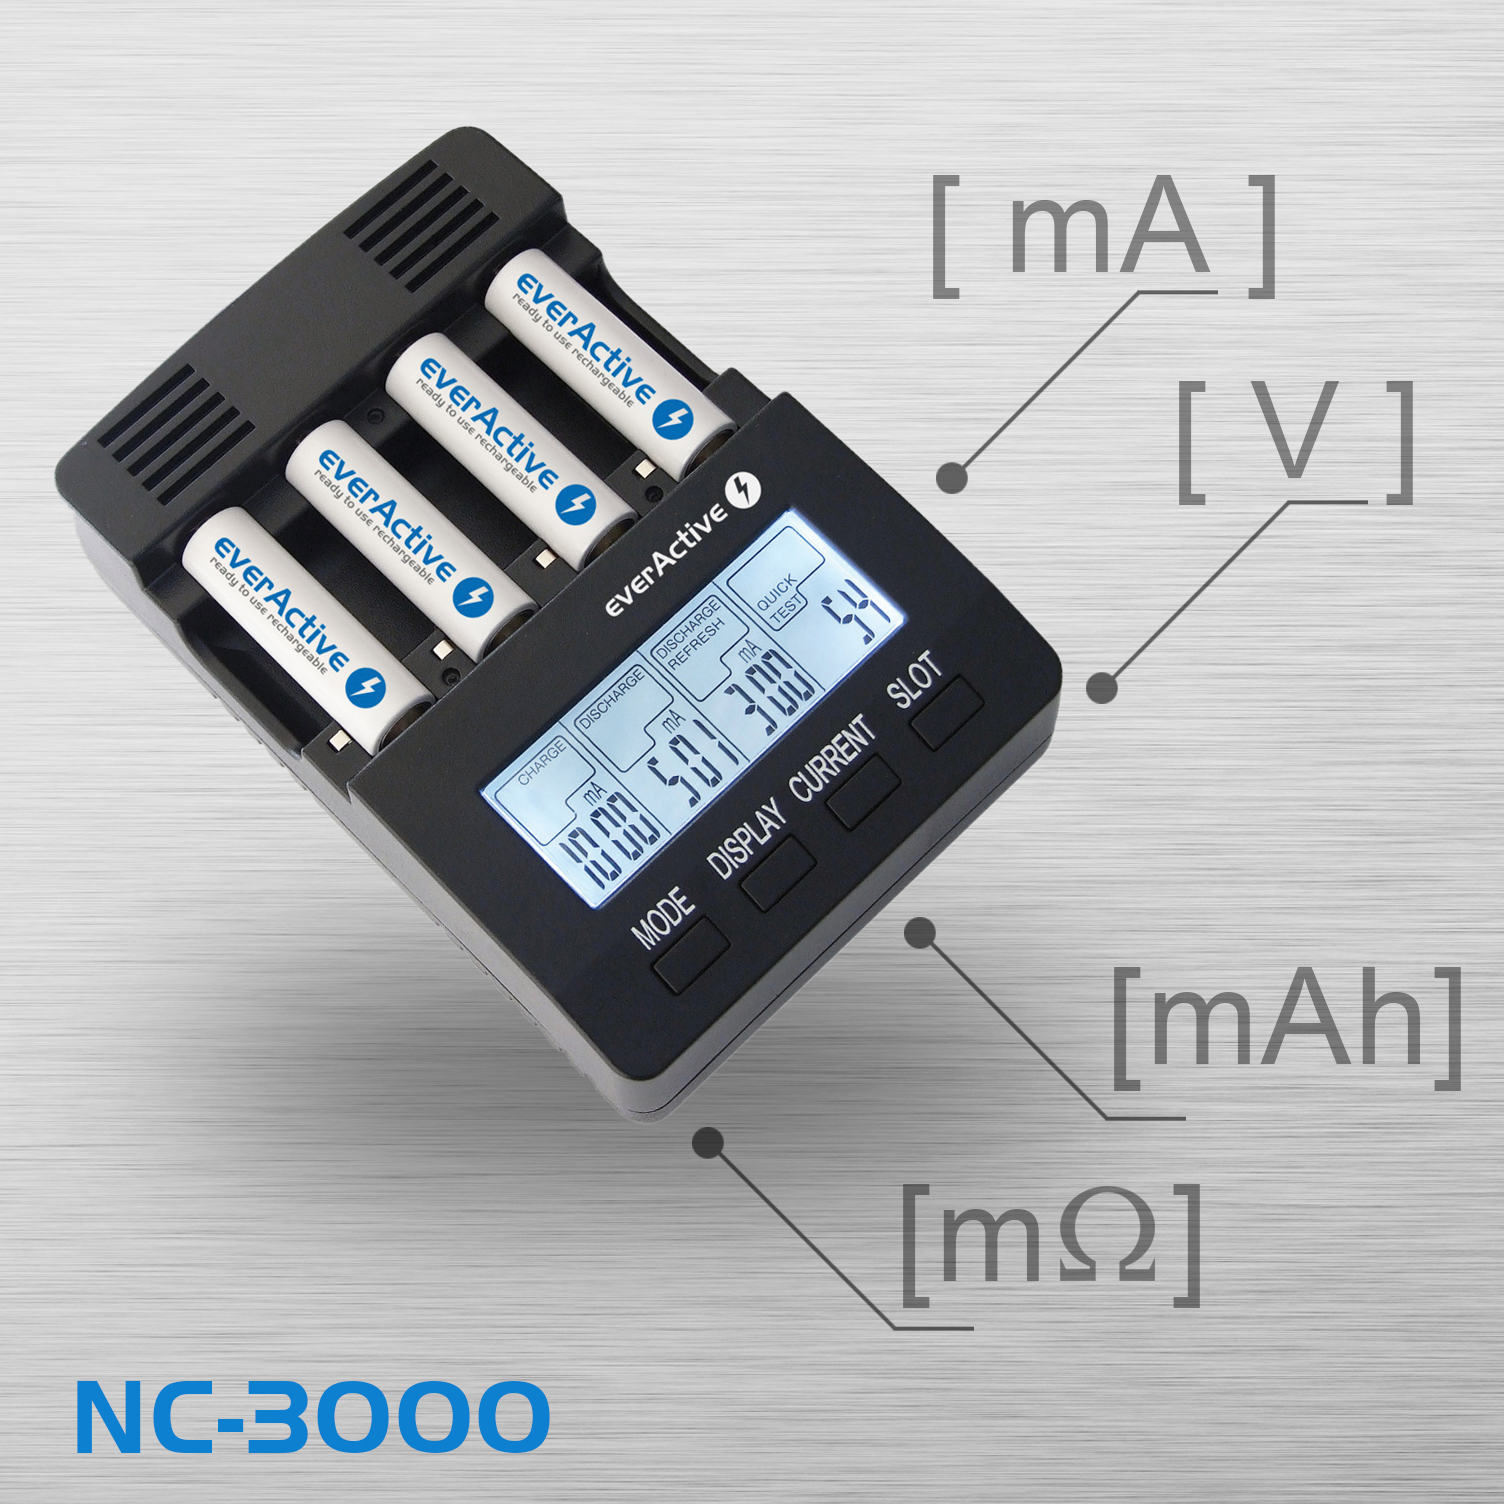 everActive NC-3000 as a battery analyzer